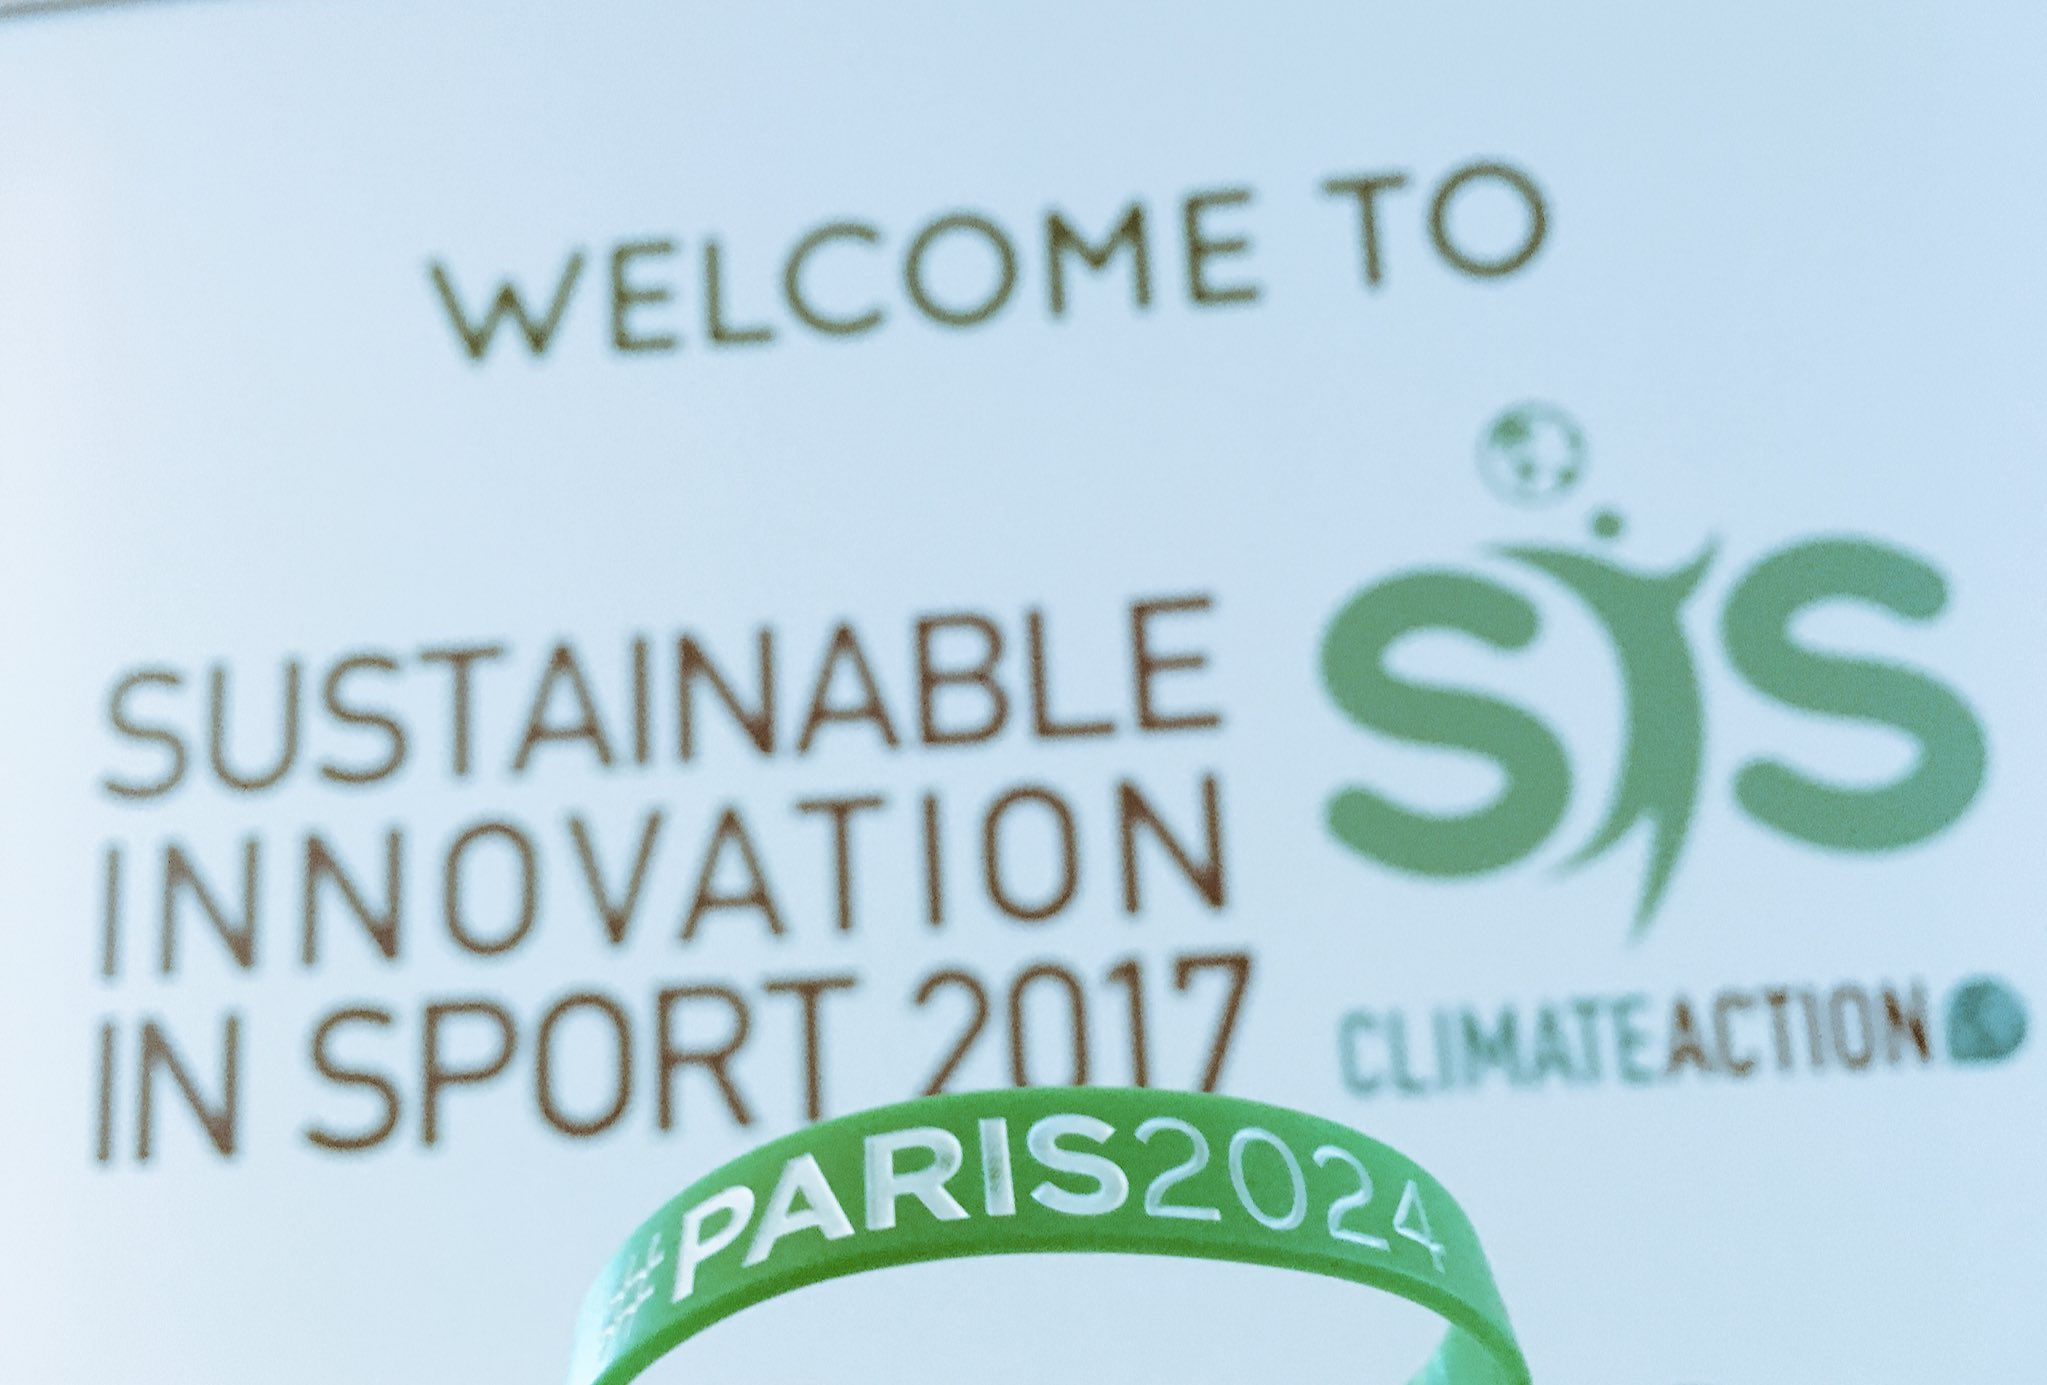 Thank you to all participants of #SIIS17 @Climate_Action_ It was a great moment of sharing for #Paris2024 team to put #Sustainabilty 1st https://t.co/SFPZ29PV9J